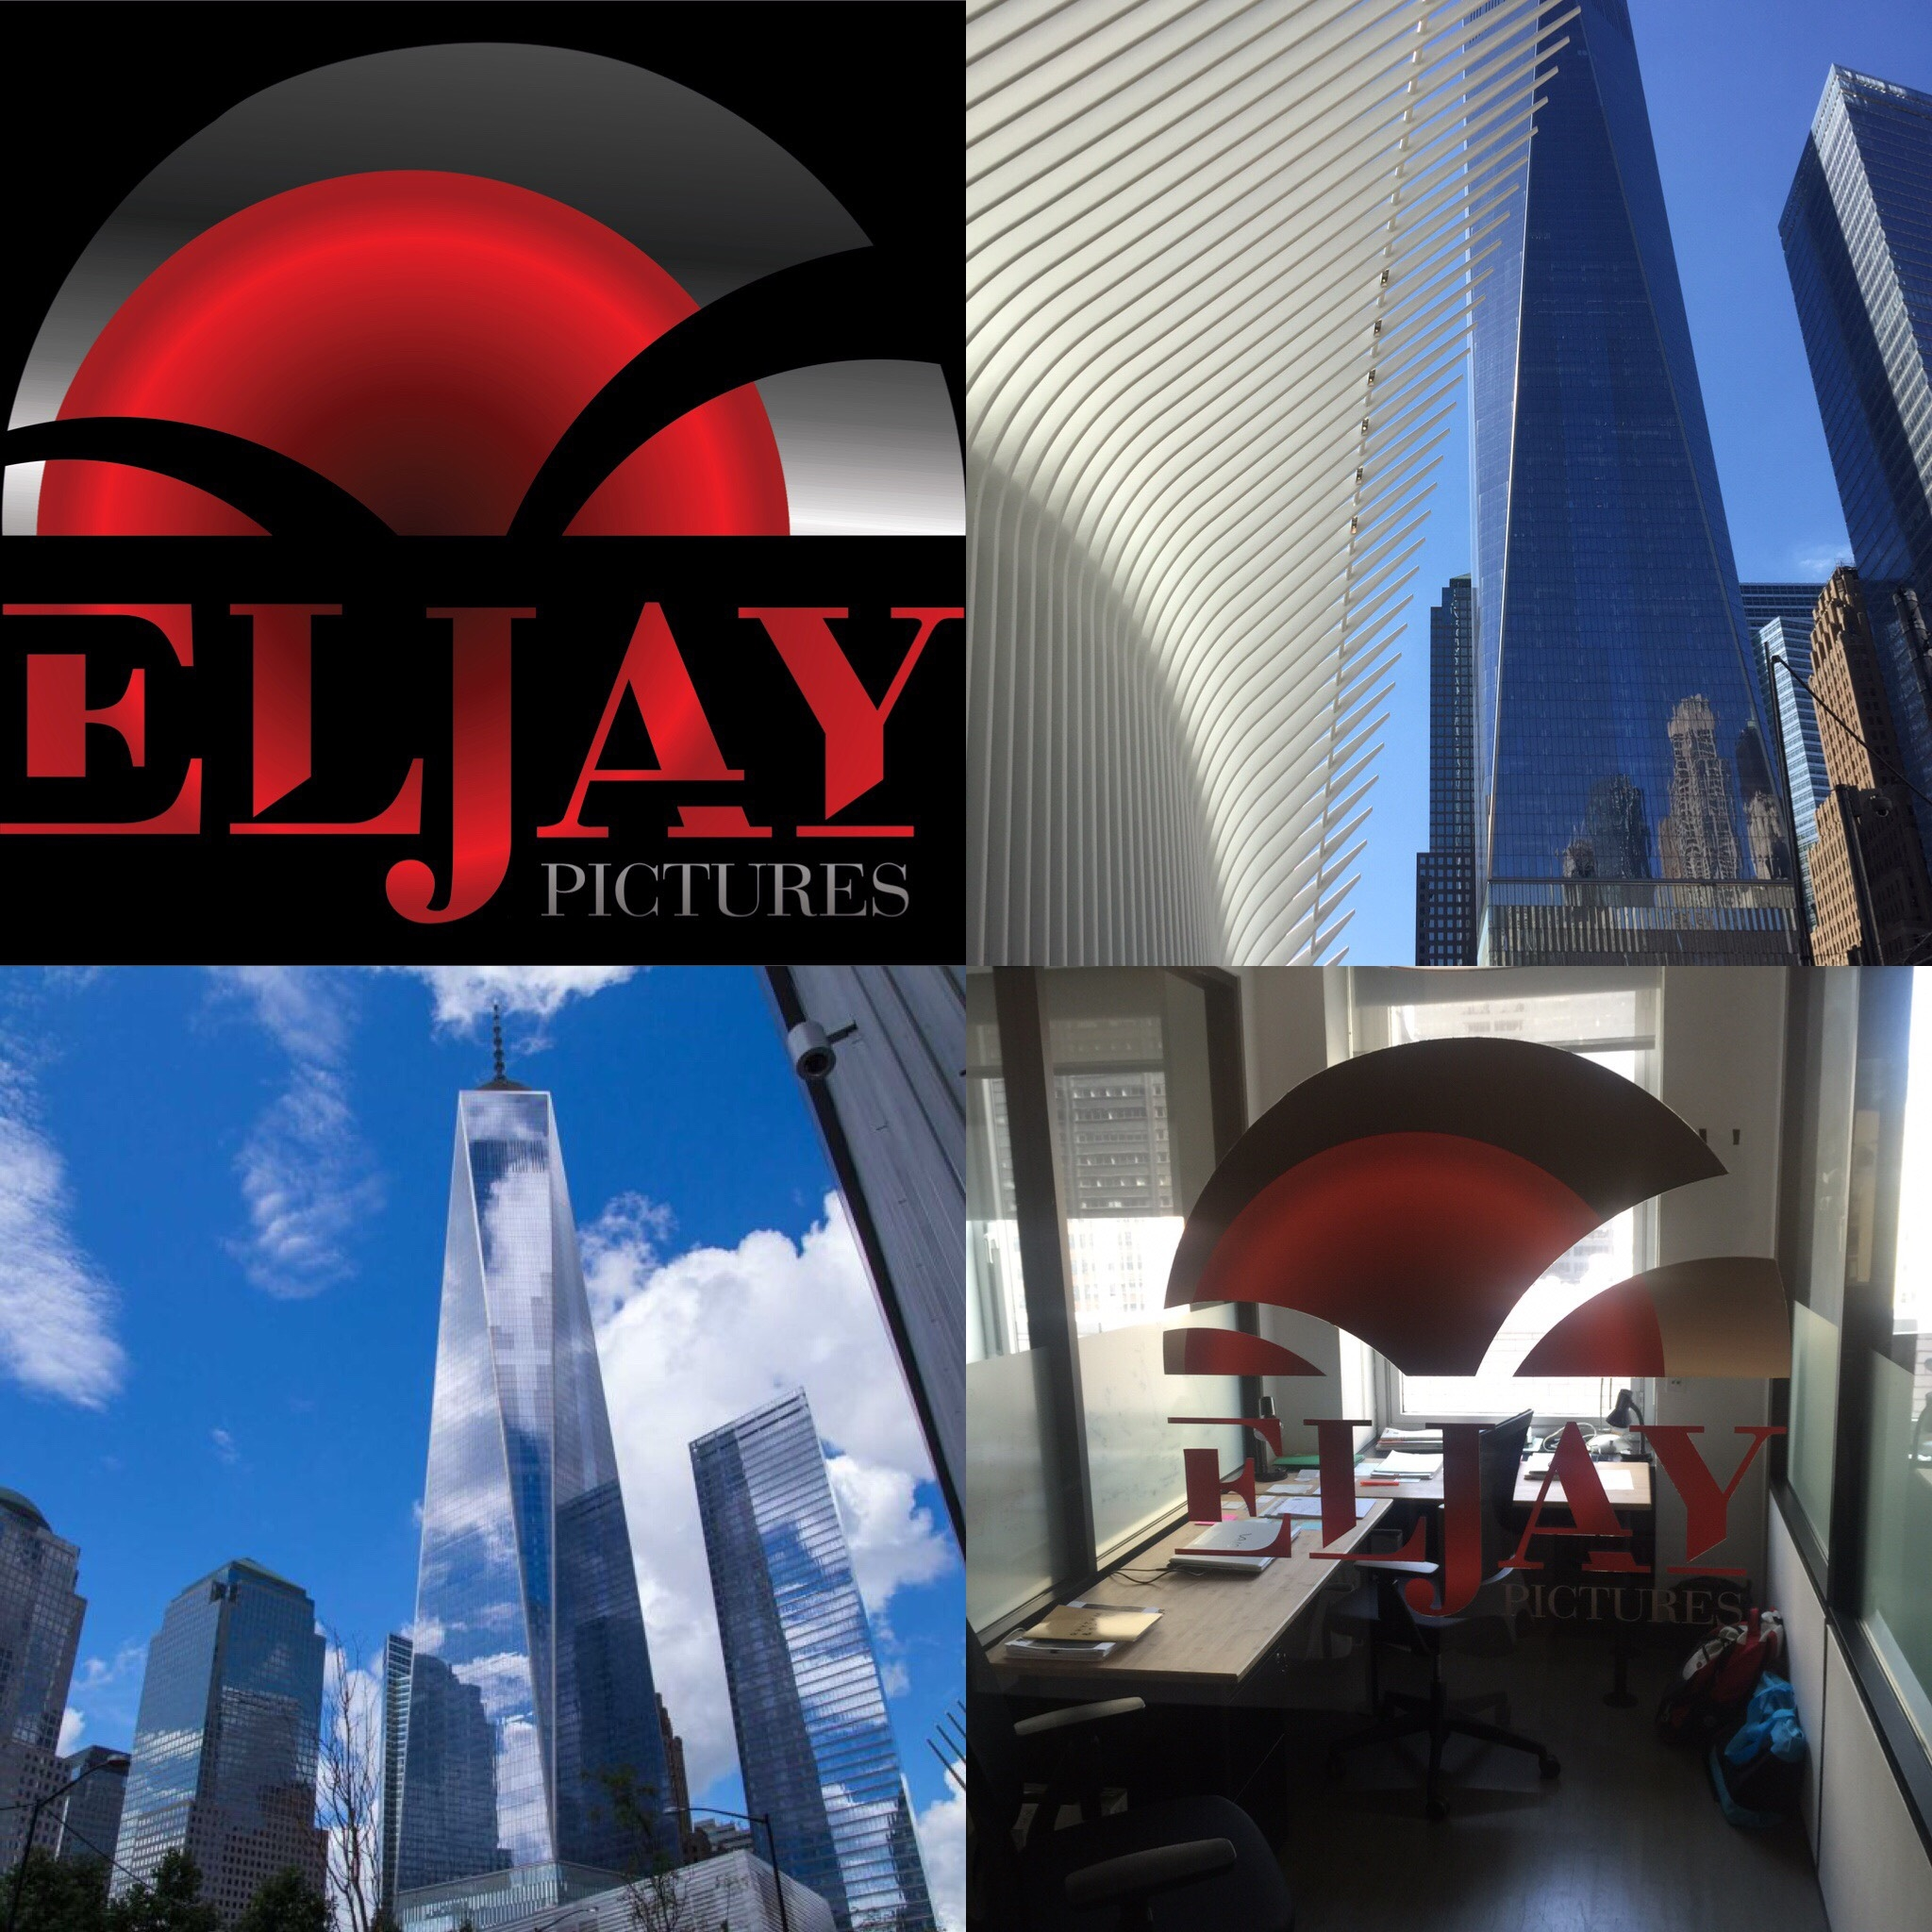 Eljay pictures in new york ny 10038 for 1440 broadway 19th floor new york ny 10018